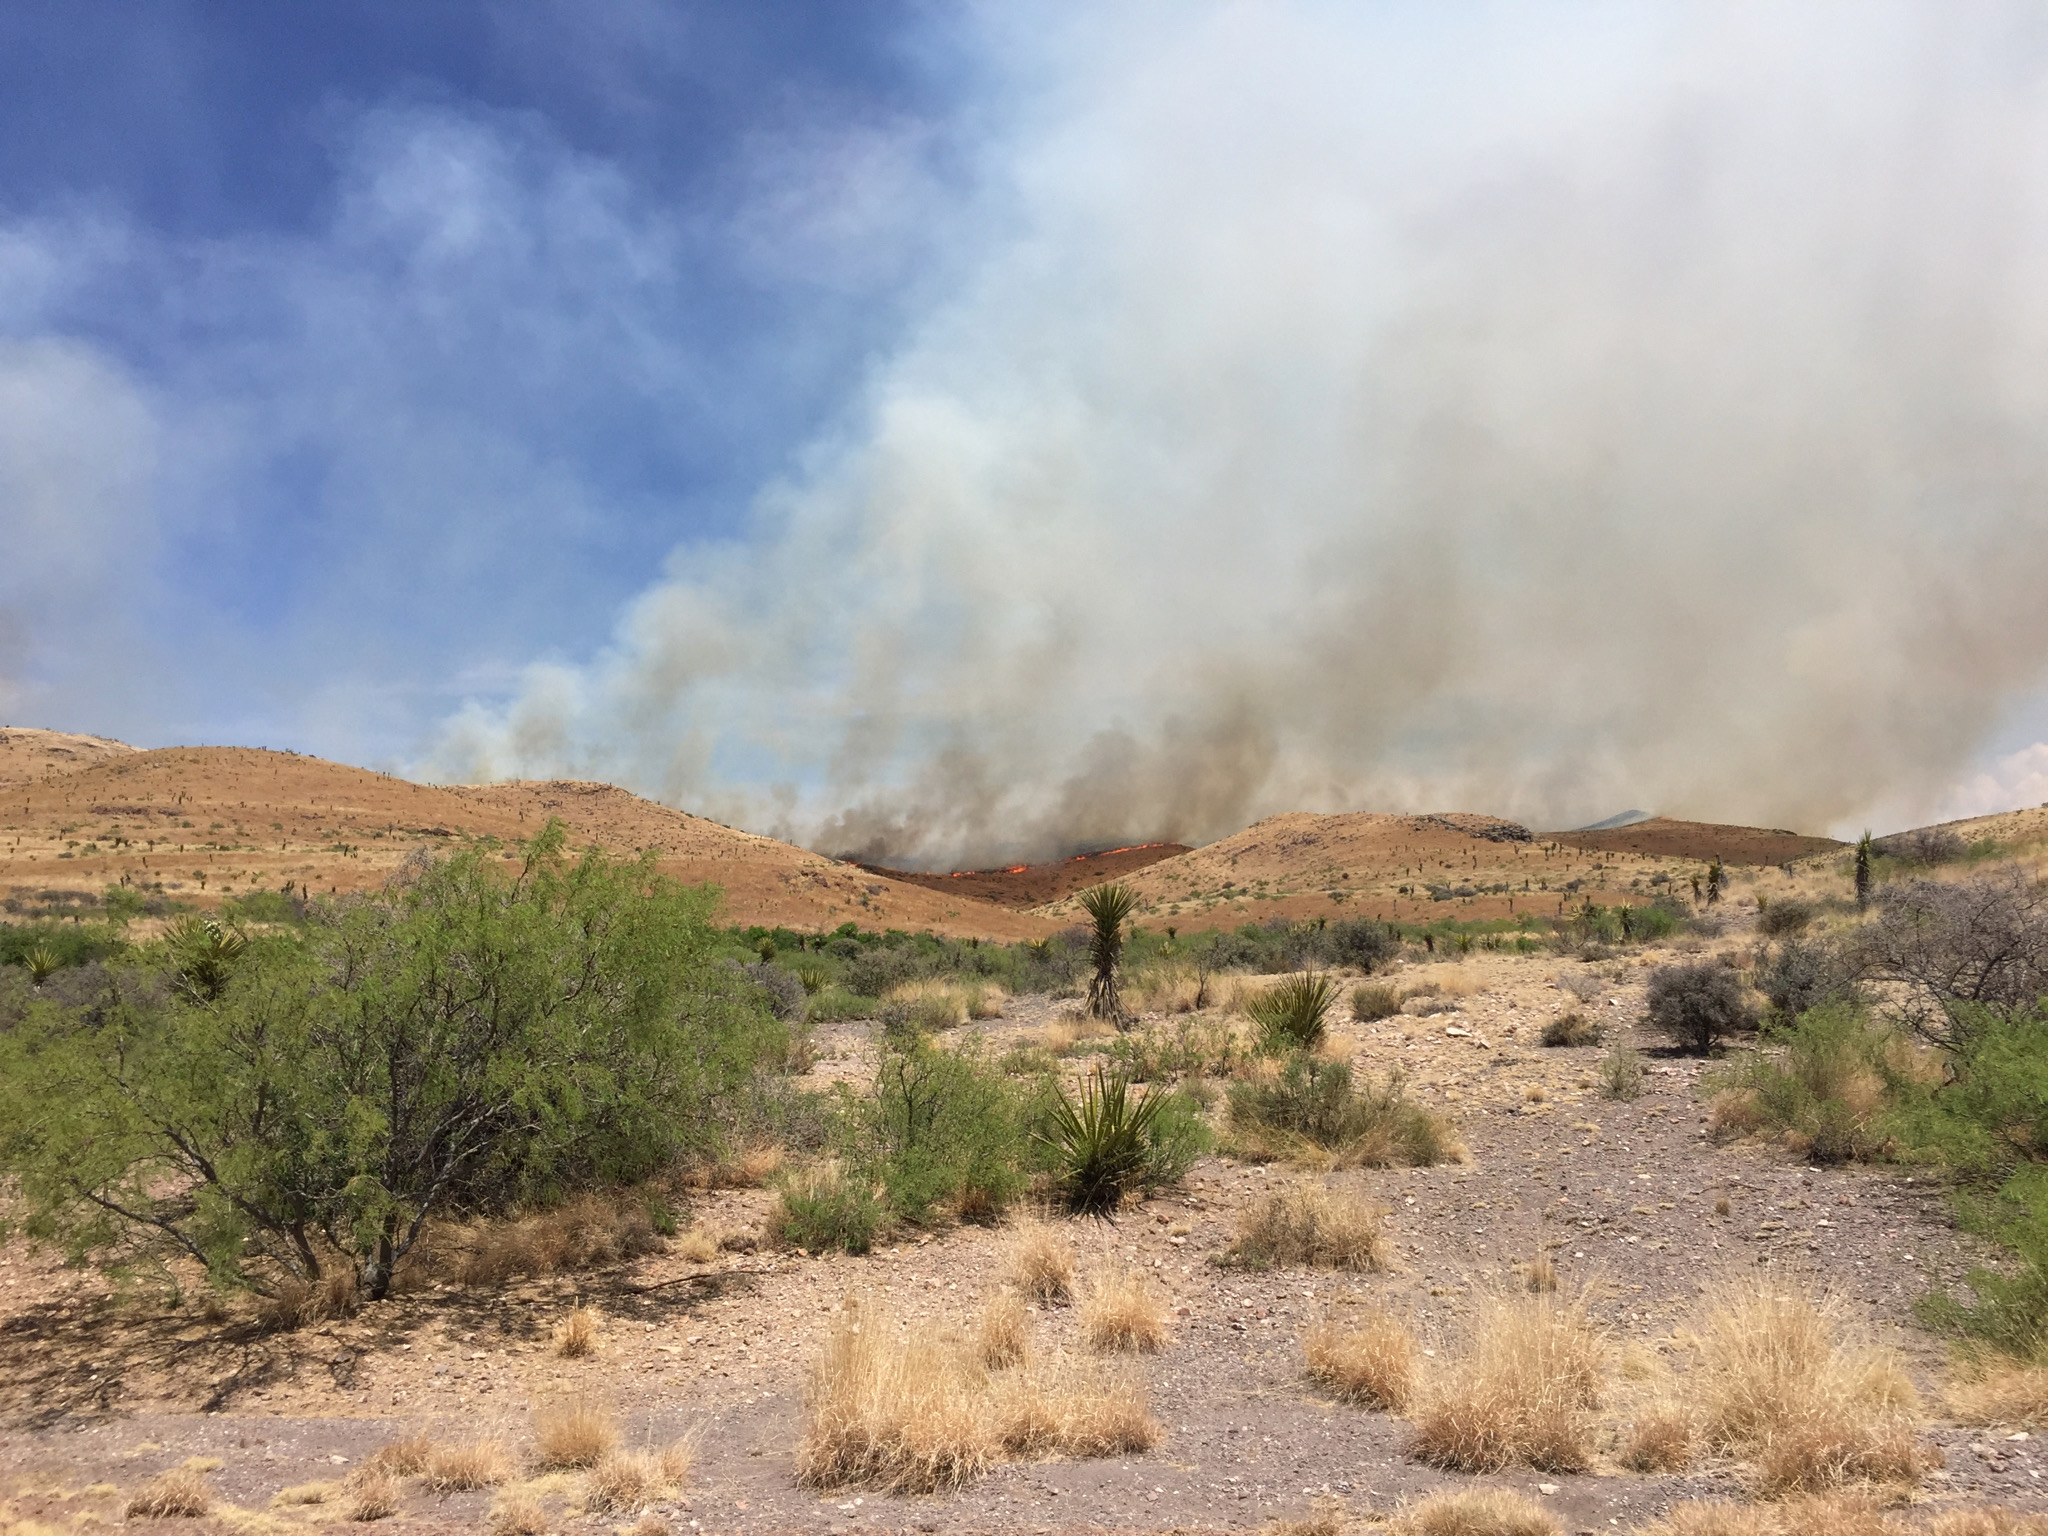 While i was struggling to fix the irrigation controller, a huge wild fire started just over the mountain and was filling the air with smoke. Fires can be extremely dangerous in the area because of the strong winds and the extreme dryness.